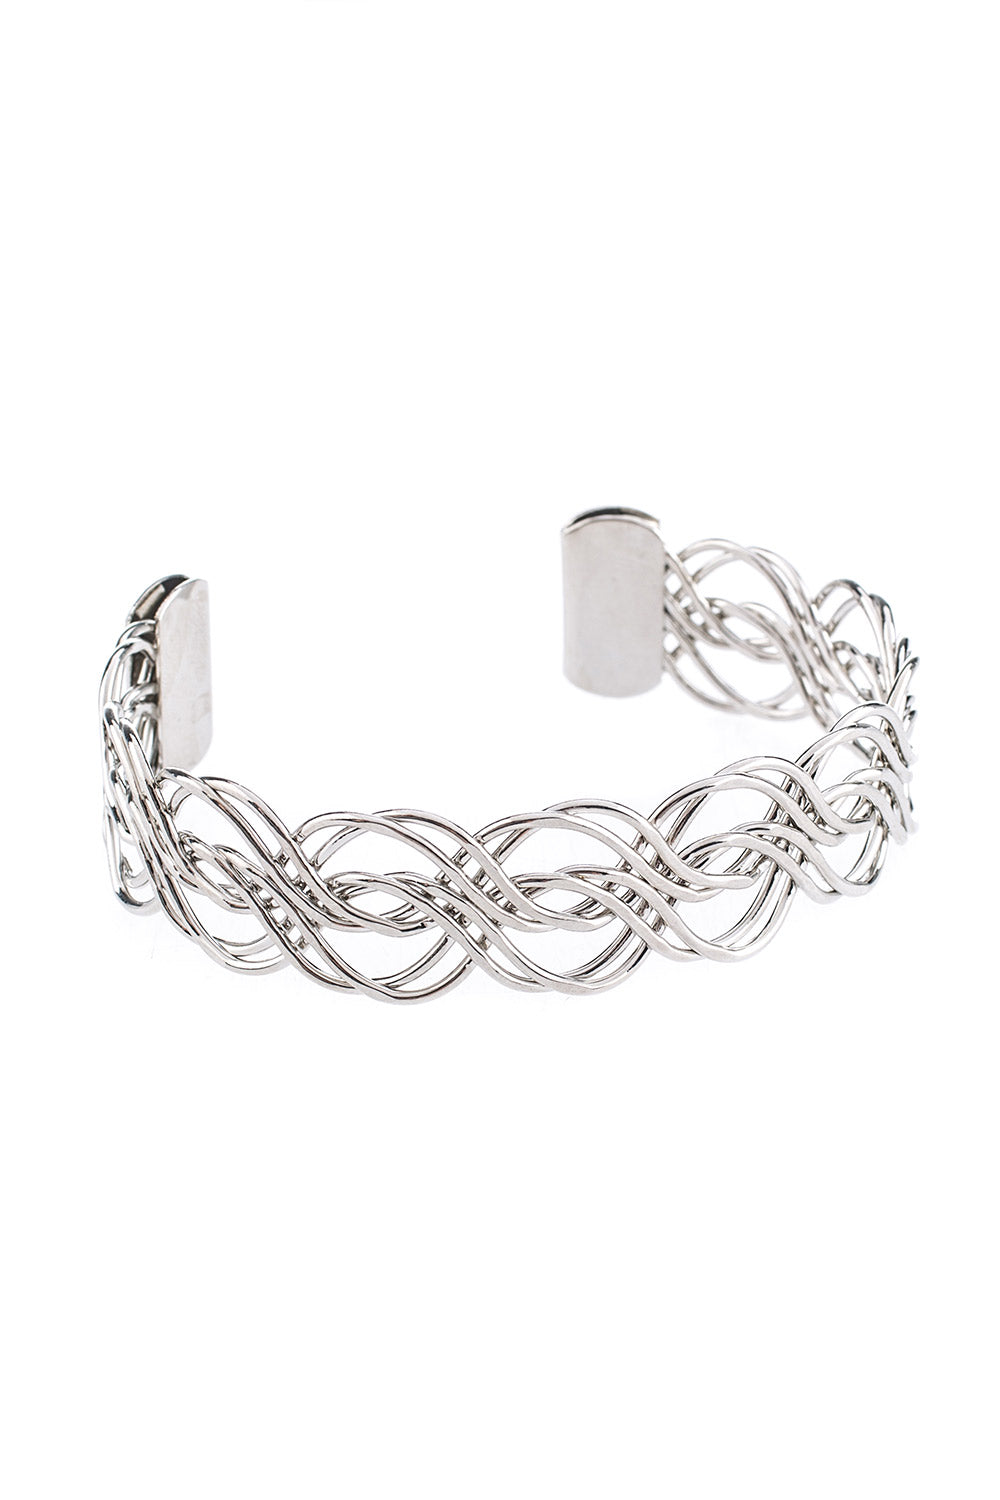 Type 2 Lost In Thought Bracelet